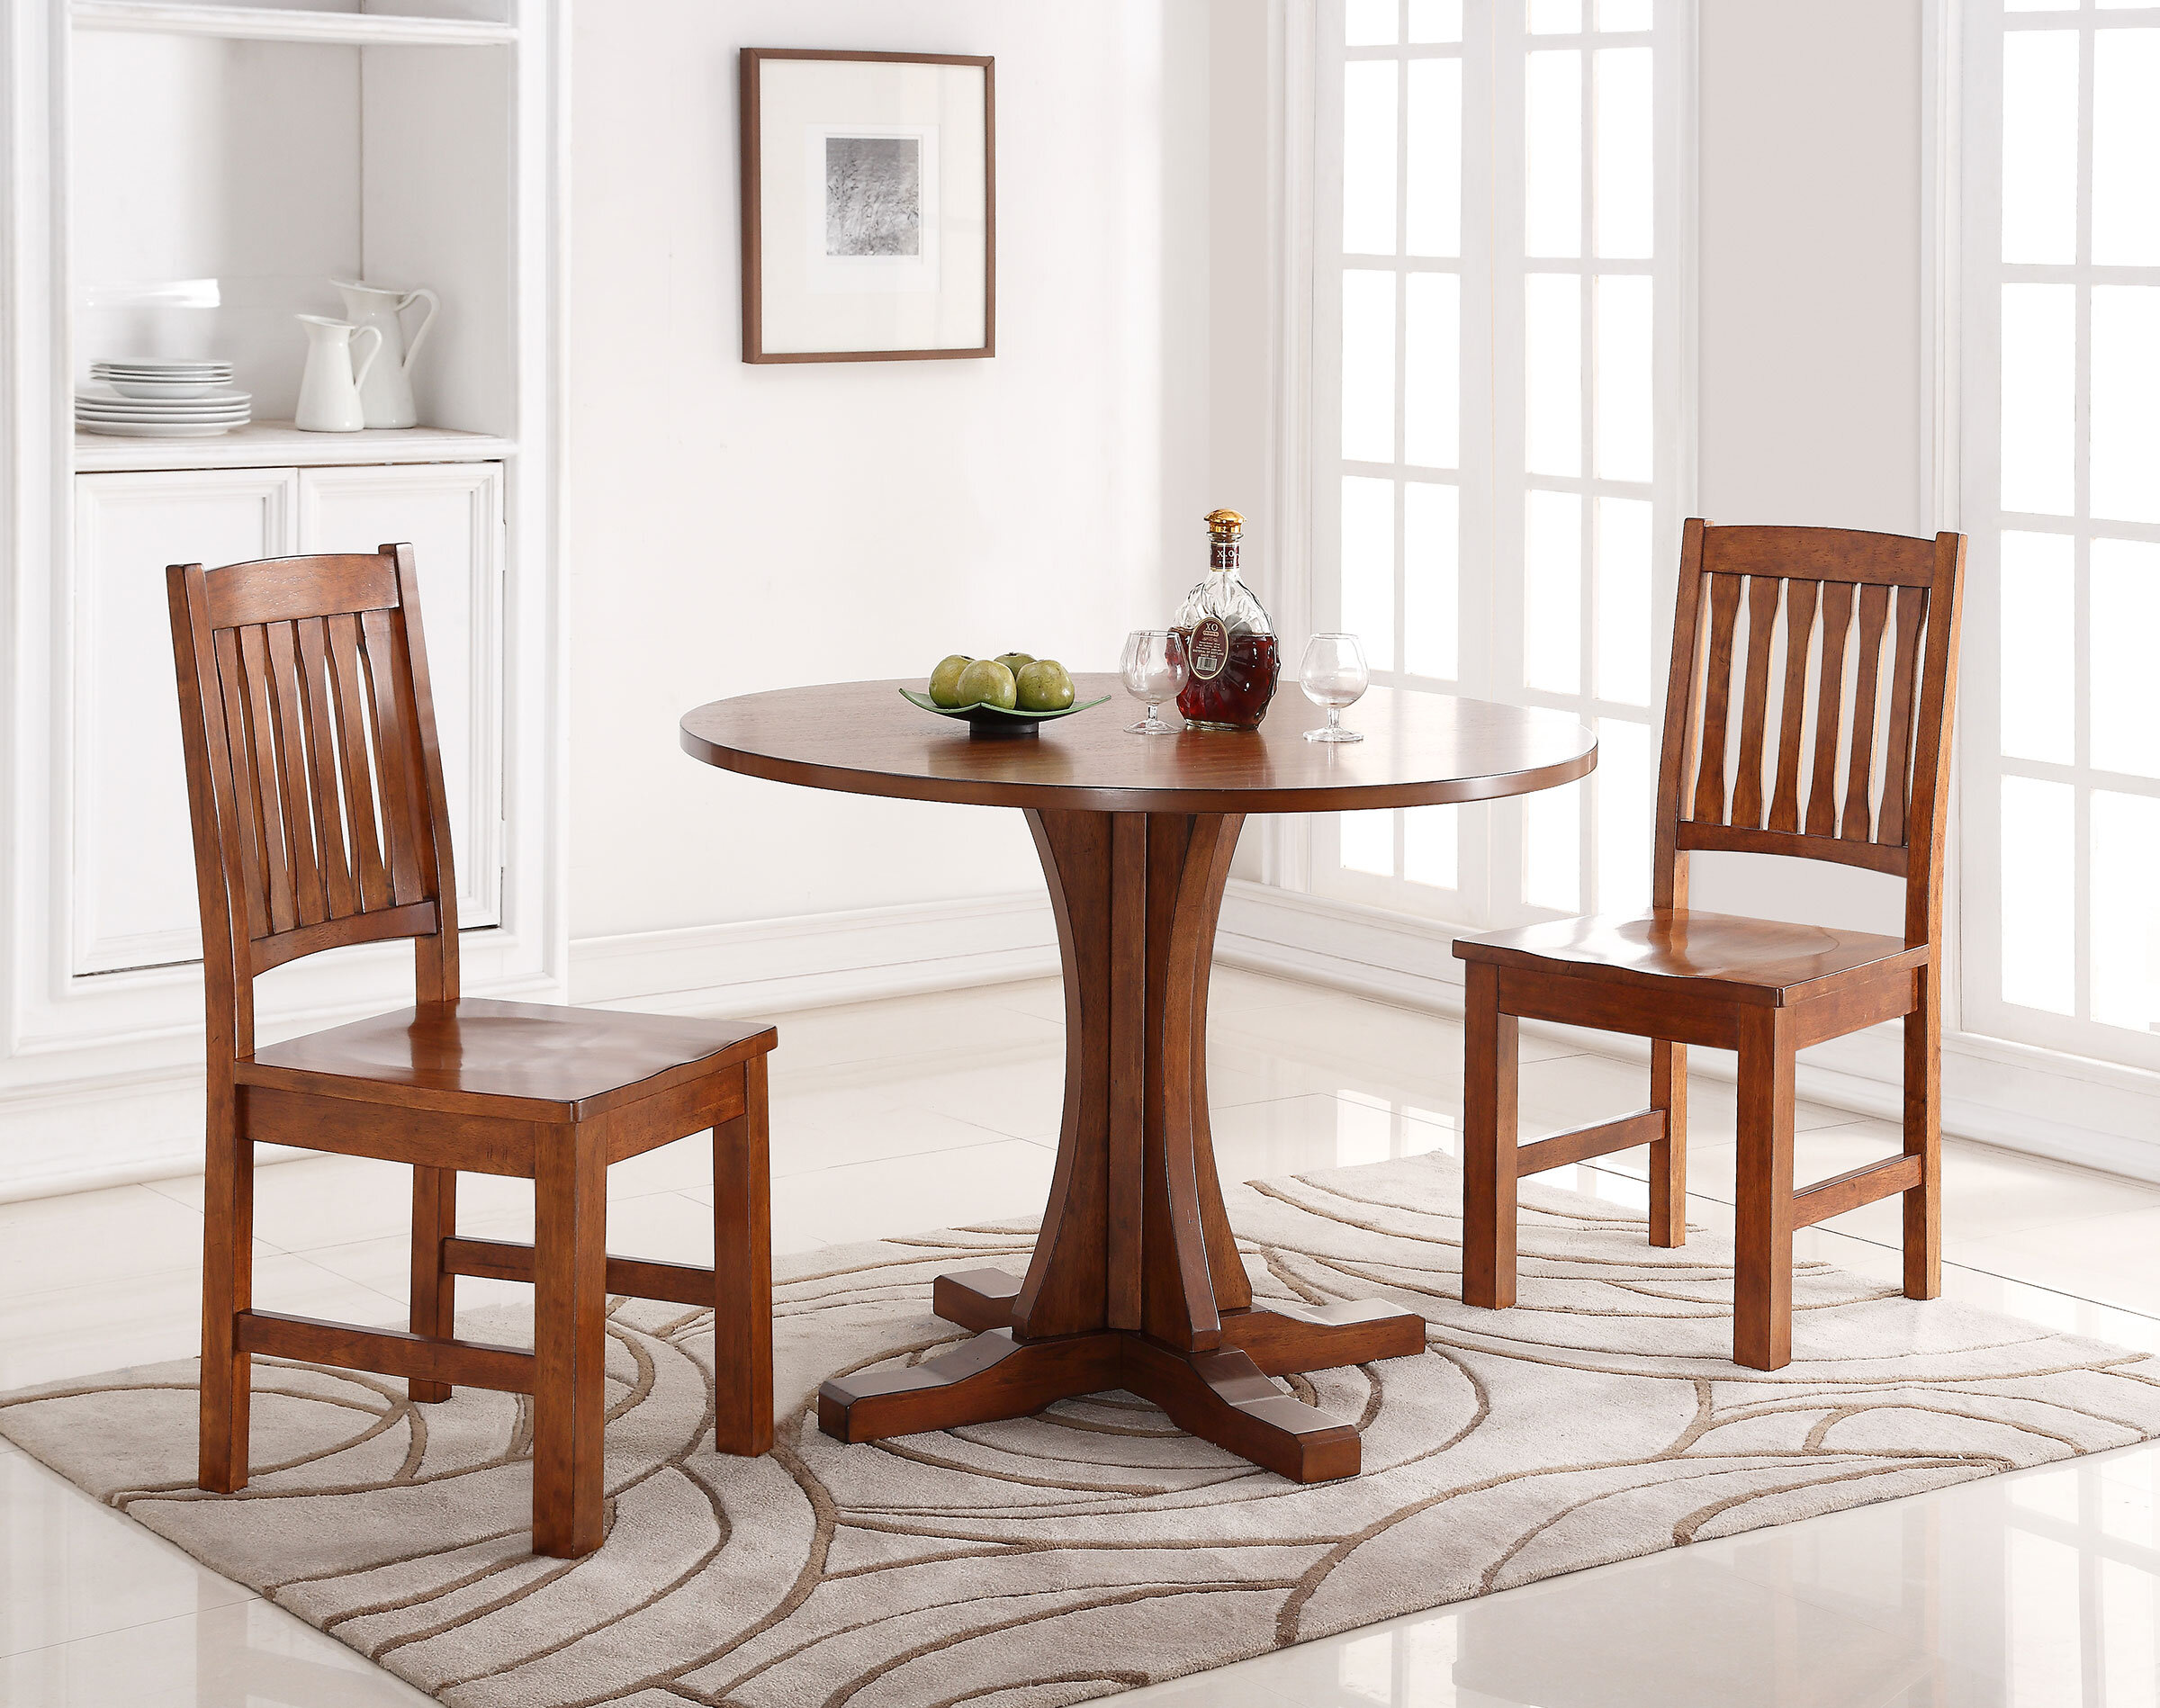 42 Inches Rustic Farmhouse Round Dining Tables You Ll Love In 2021 Wayfair